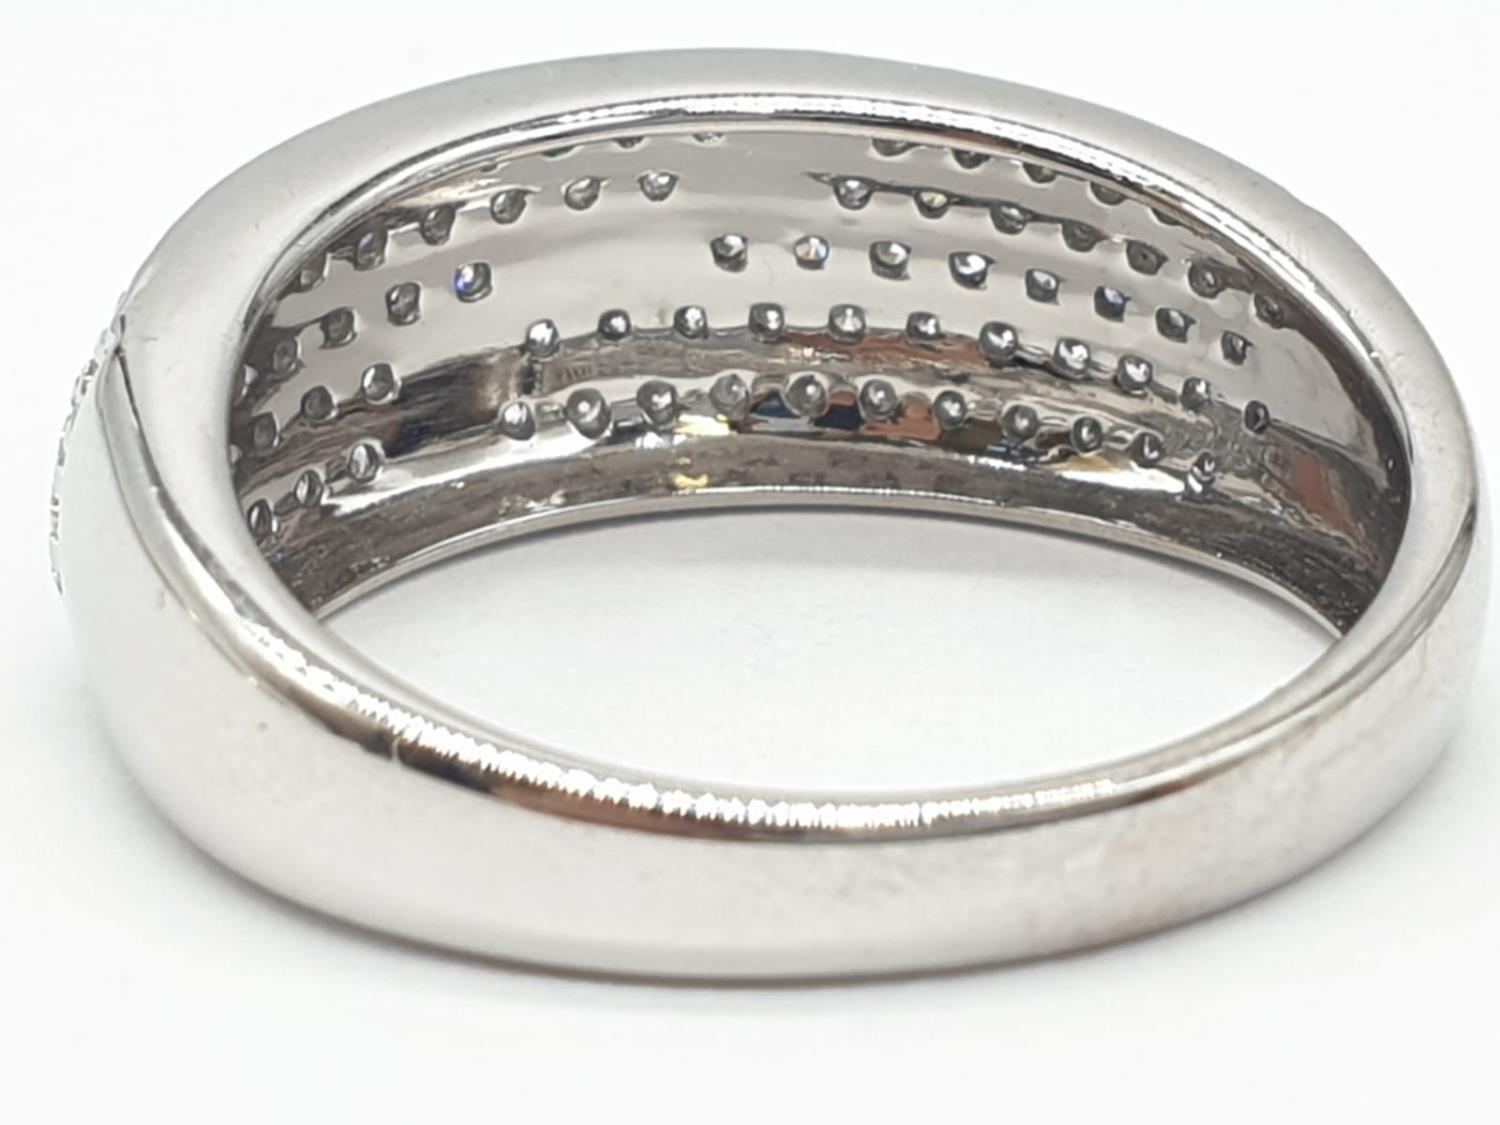 18ct diamond encrusted stylist ring. Weighs 5.6g and is a size O. - Image 4 of 7